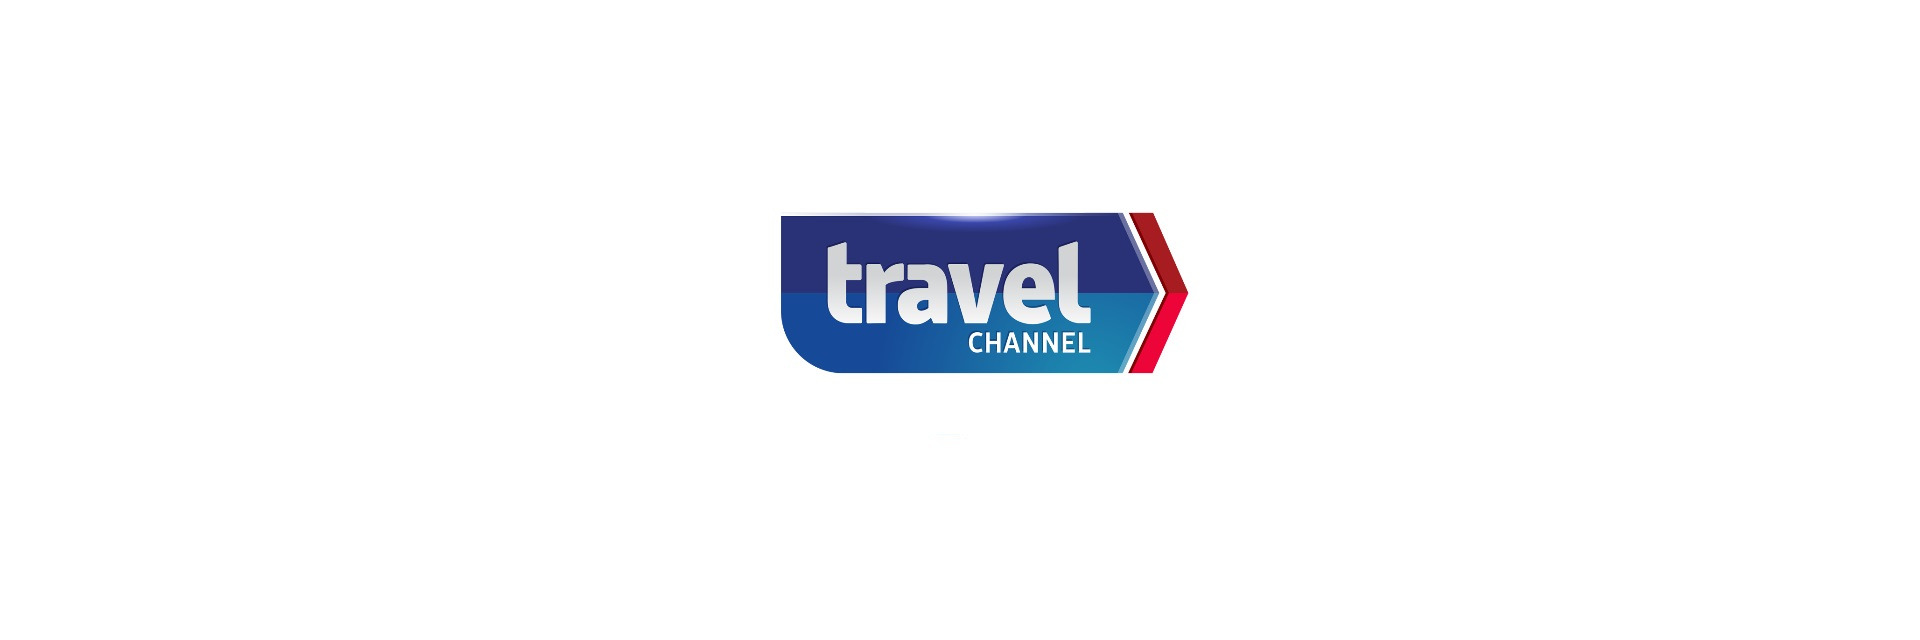 Ramówka Travel Channel